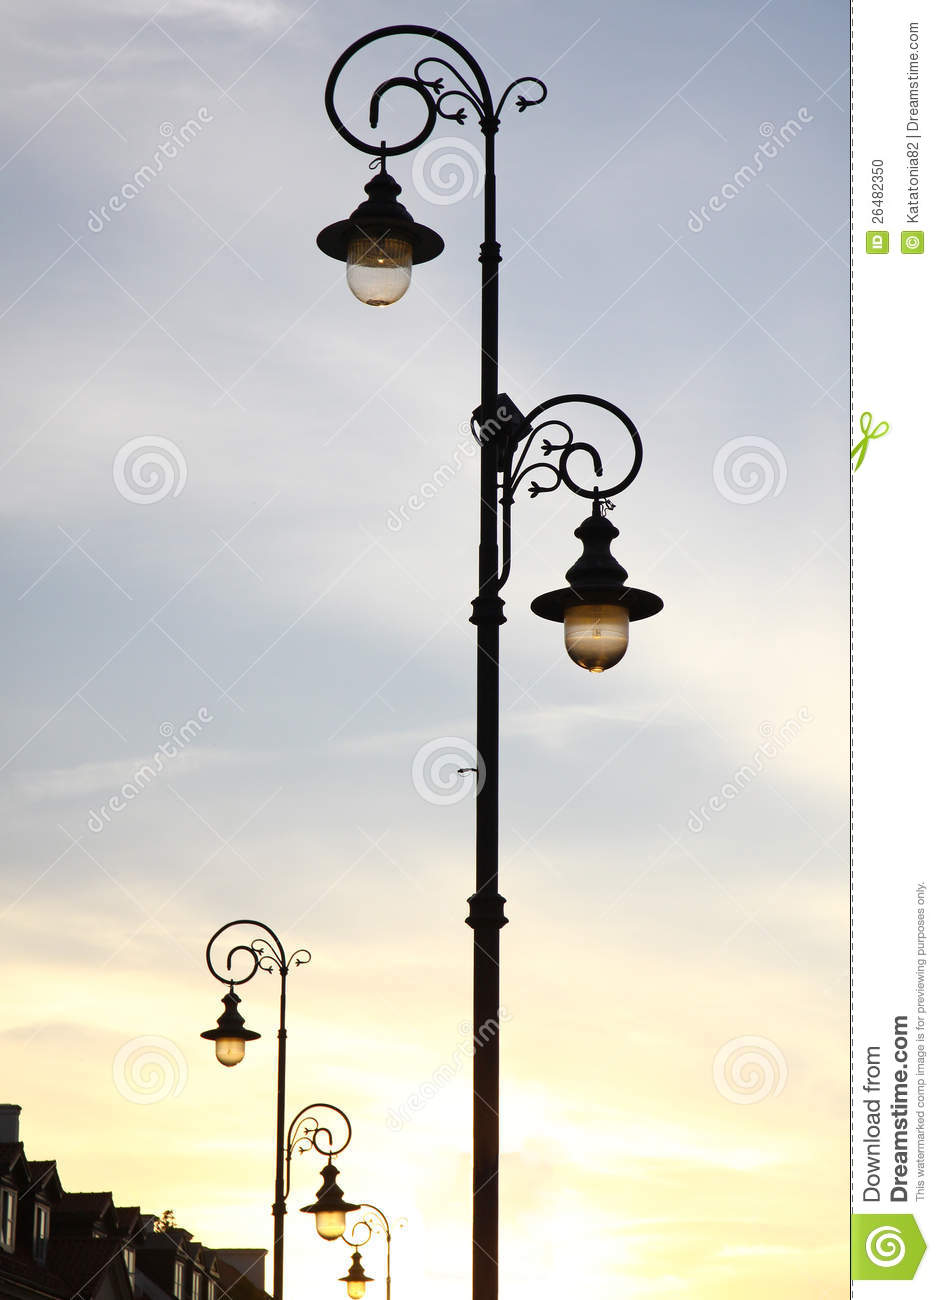 Lampadaire Exterieur Urbain Retro Styled Lamppost On The Street Stock Photo Image Of Figure